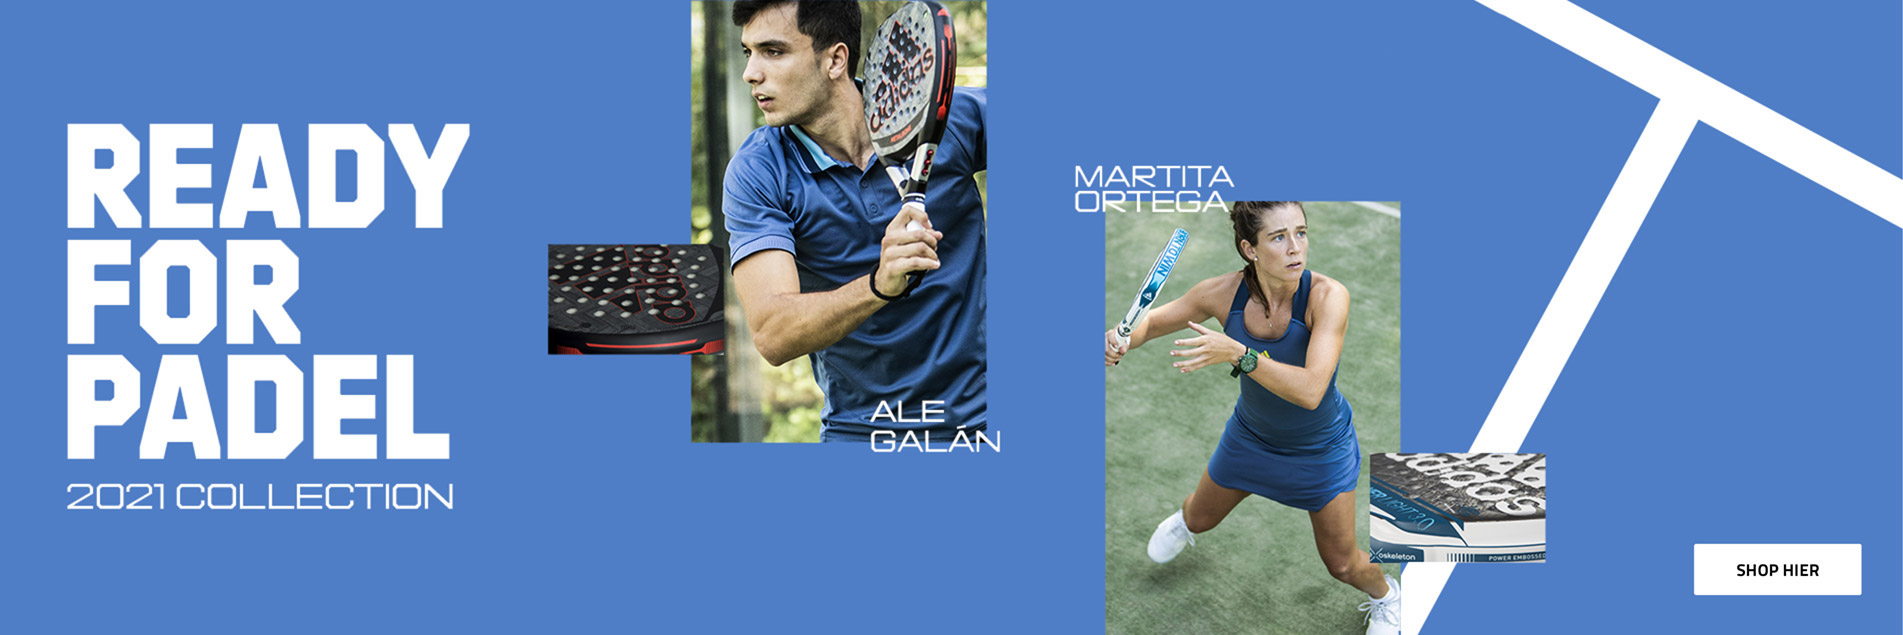 Adidas | Ready For Padel